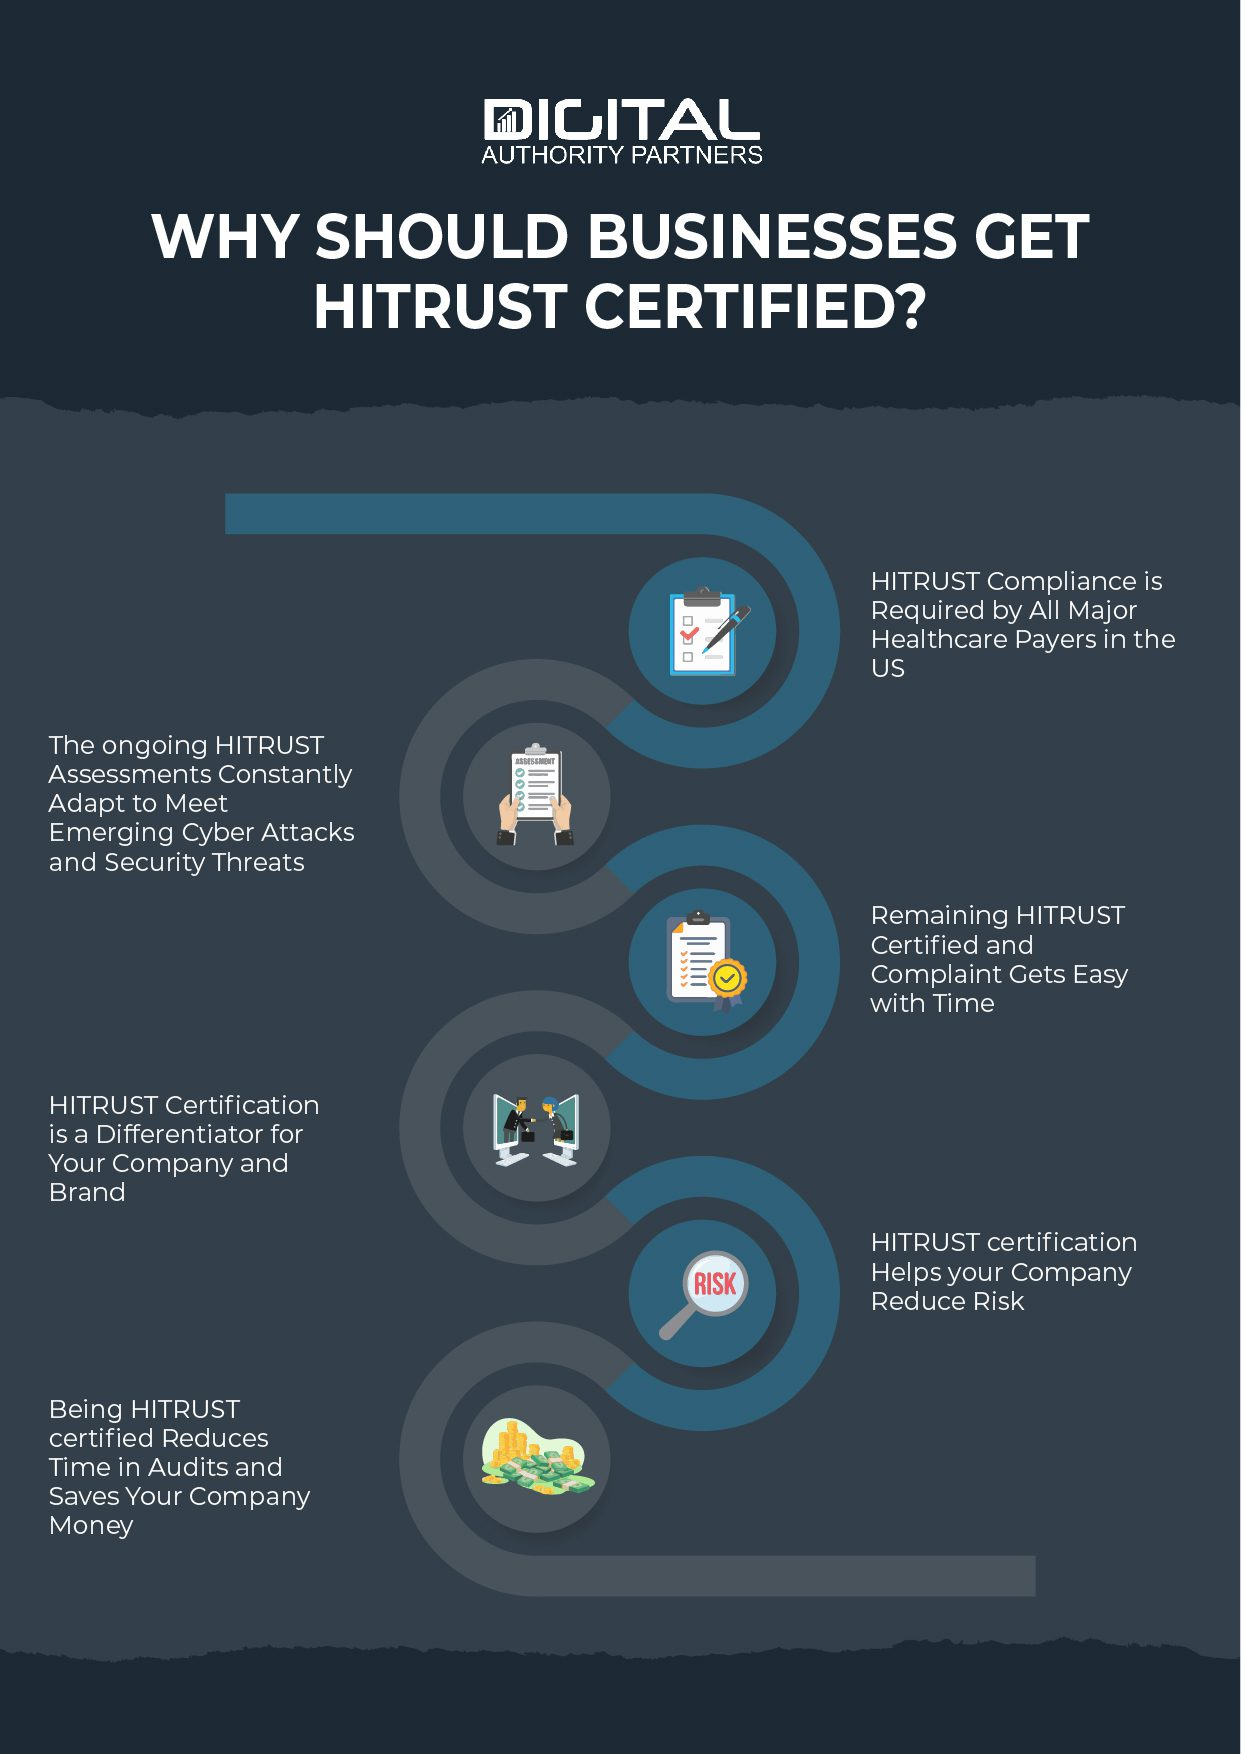 Infographic explaining the reasons why businesses should get HITRUST certified